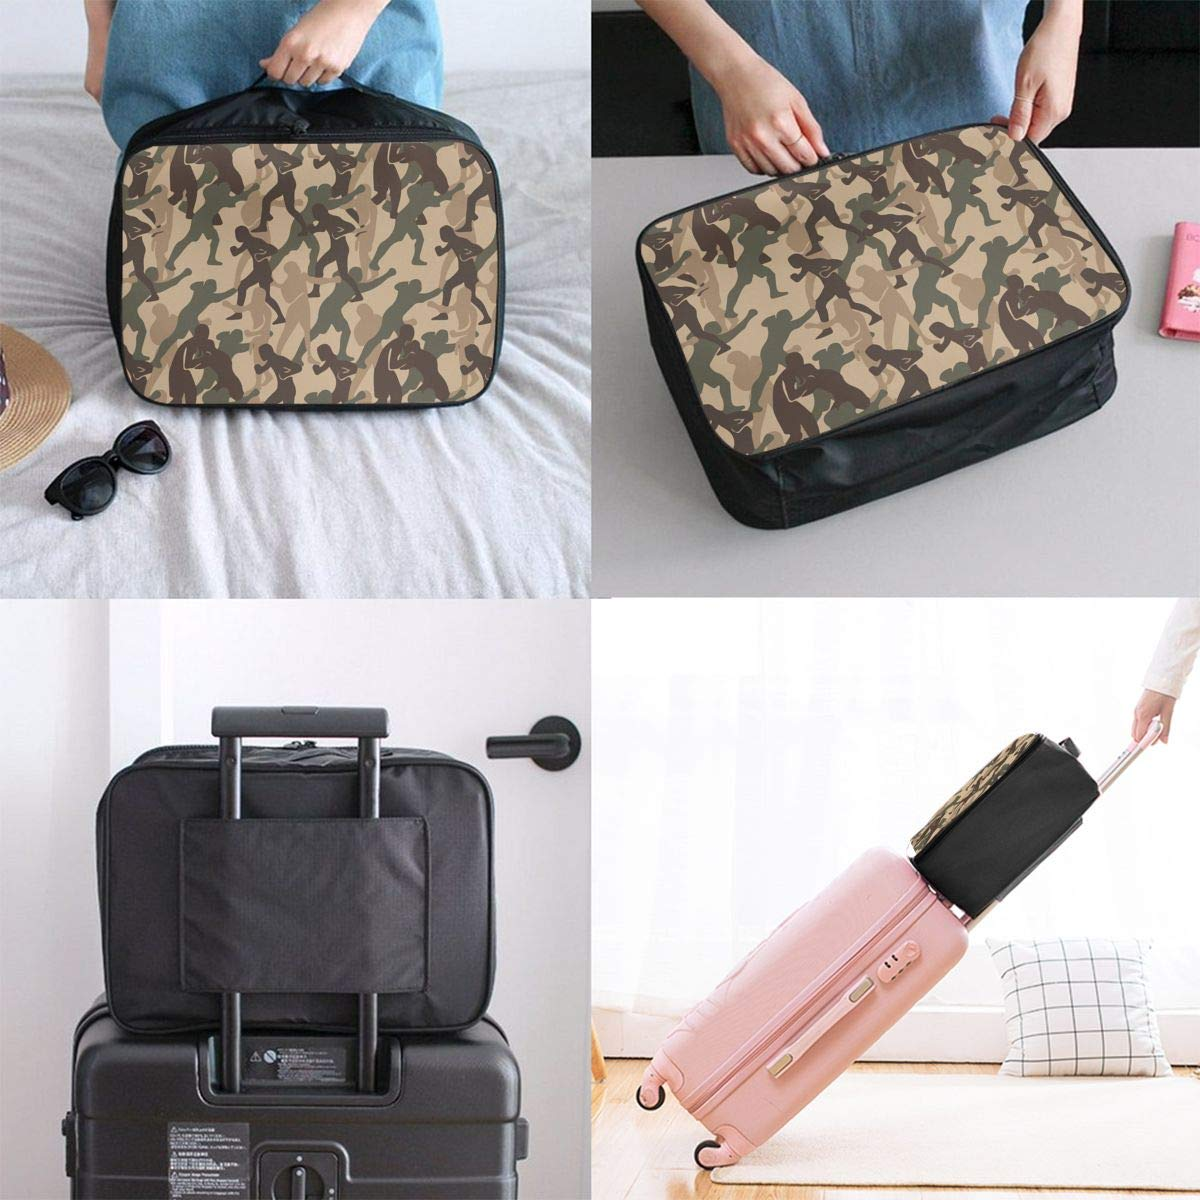 Boxing Camouflage Travel Pouch Carry-on Duffle Bag Lightweight Waterproof Portable Luggage Bag Attach To Suitcase